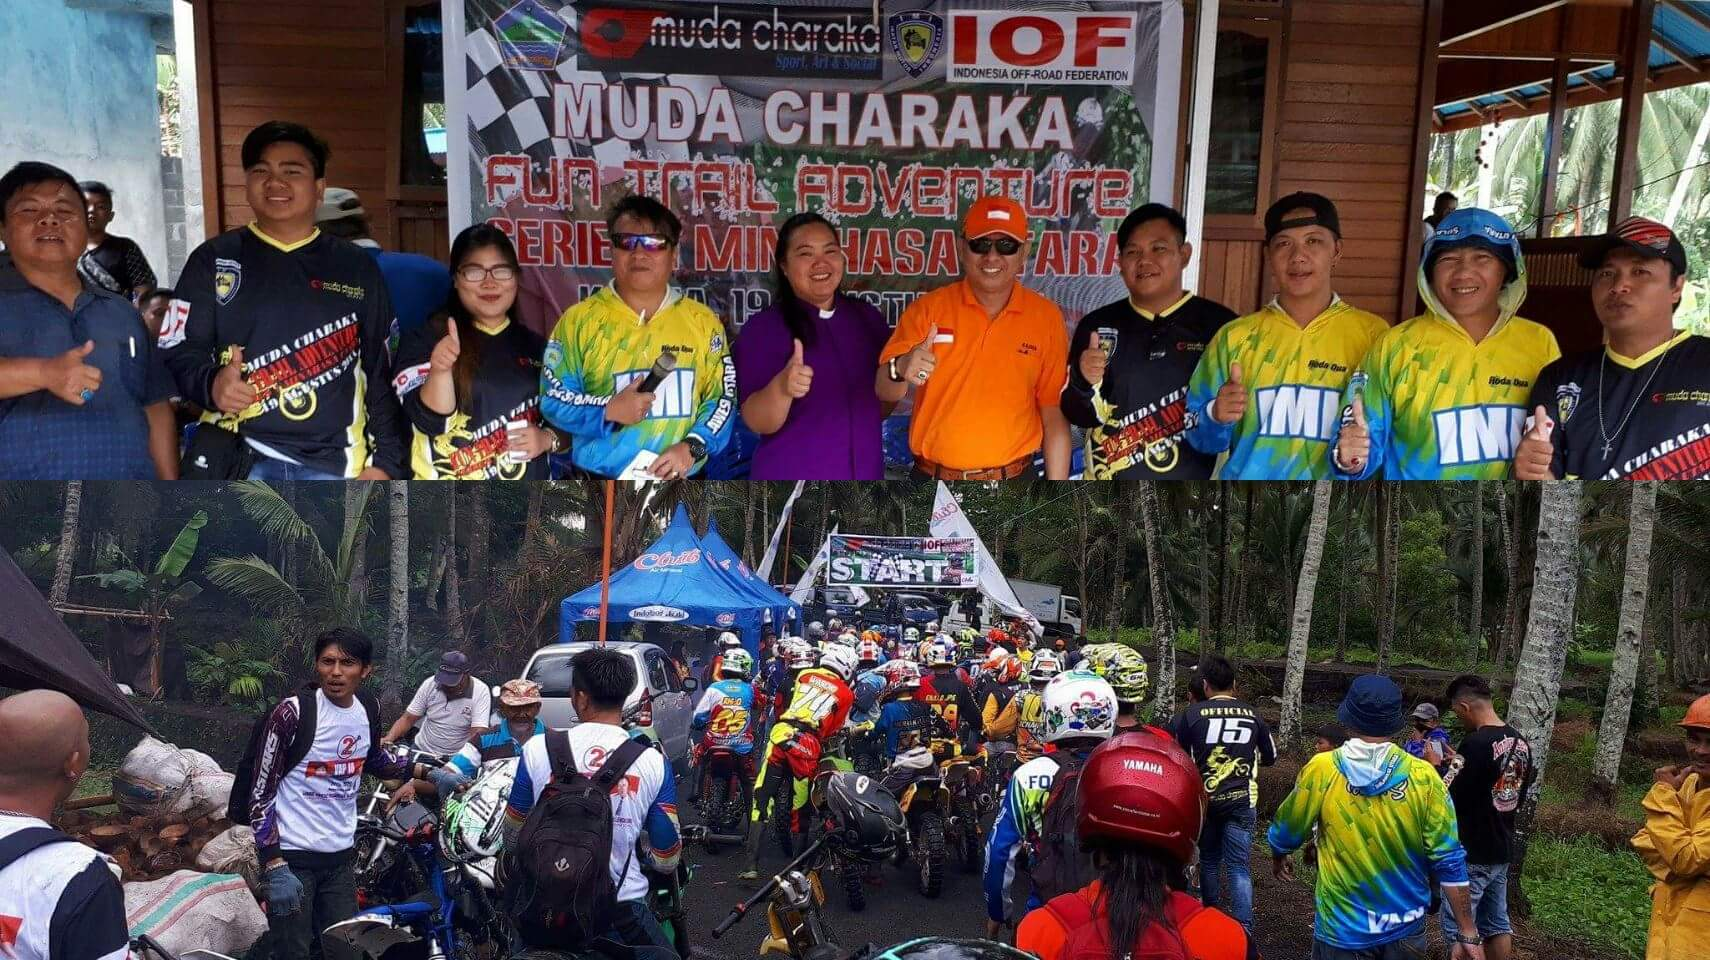 Meydi Kumaseh Suport Muda Charaka Trail Adventure Series 1